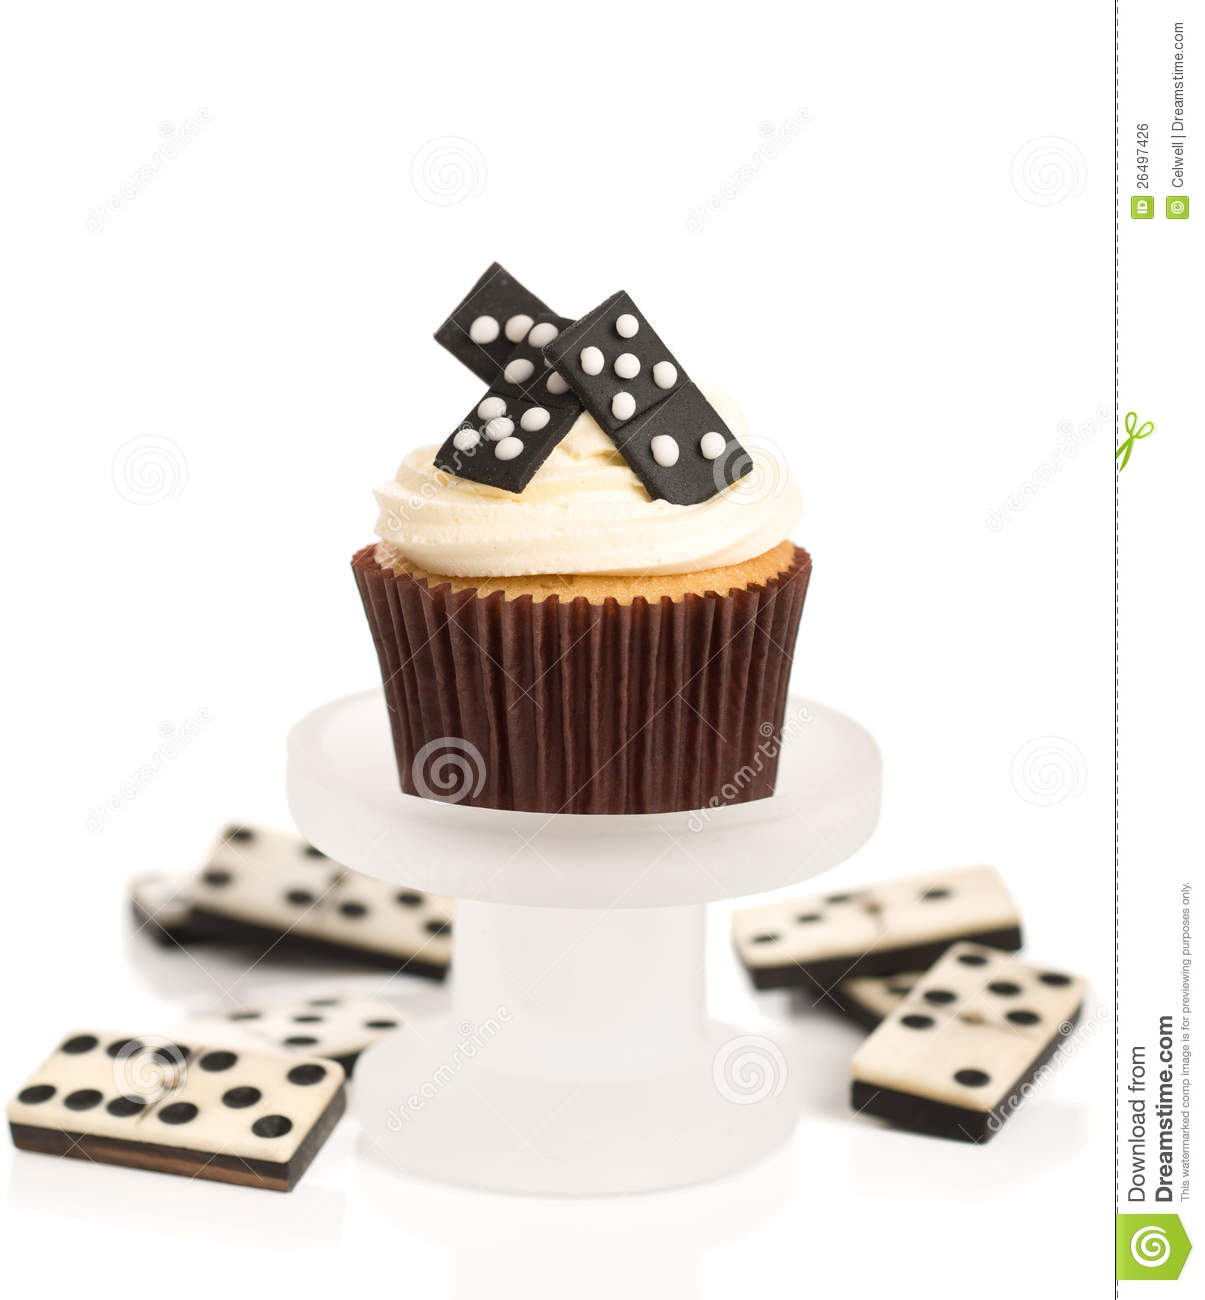 Domino Cupcakes stock photo Image of chips icing decoration